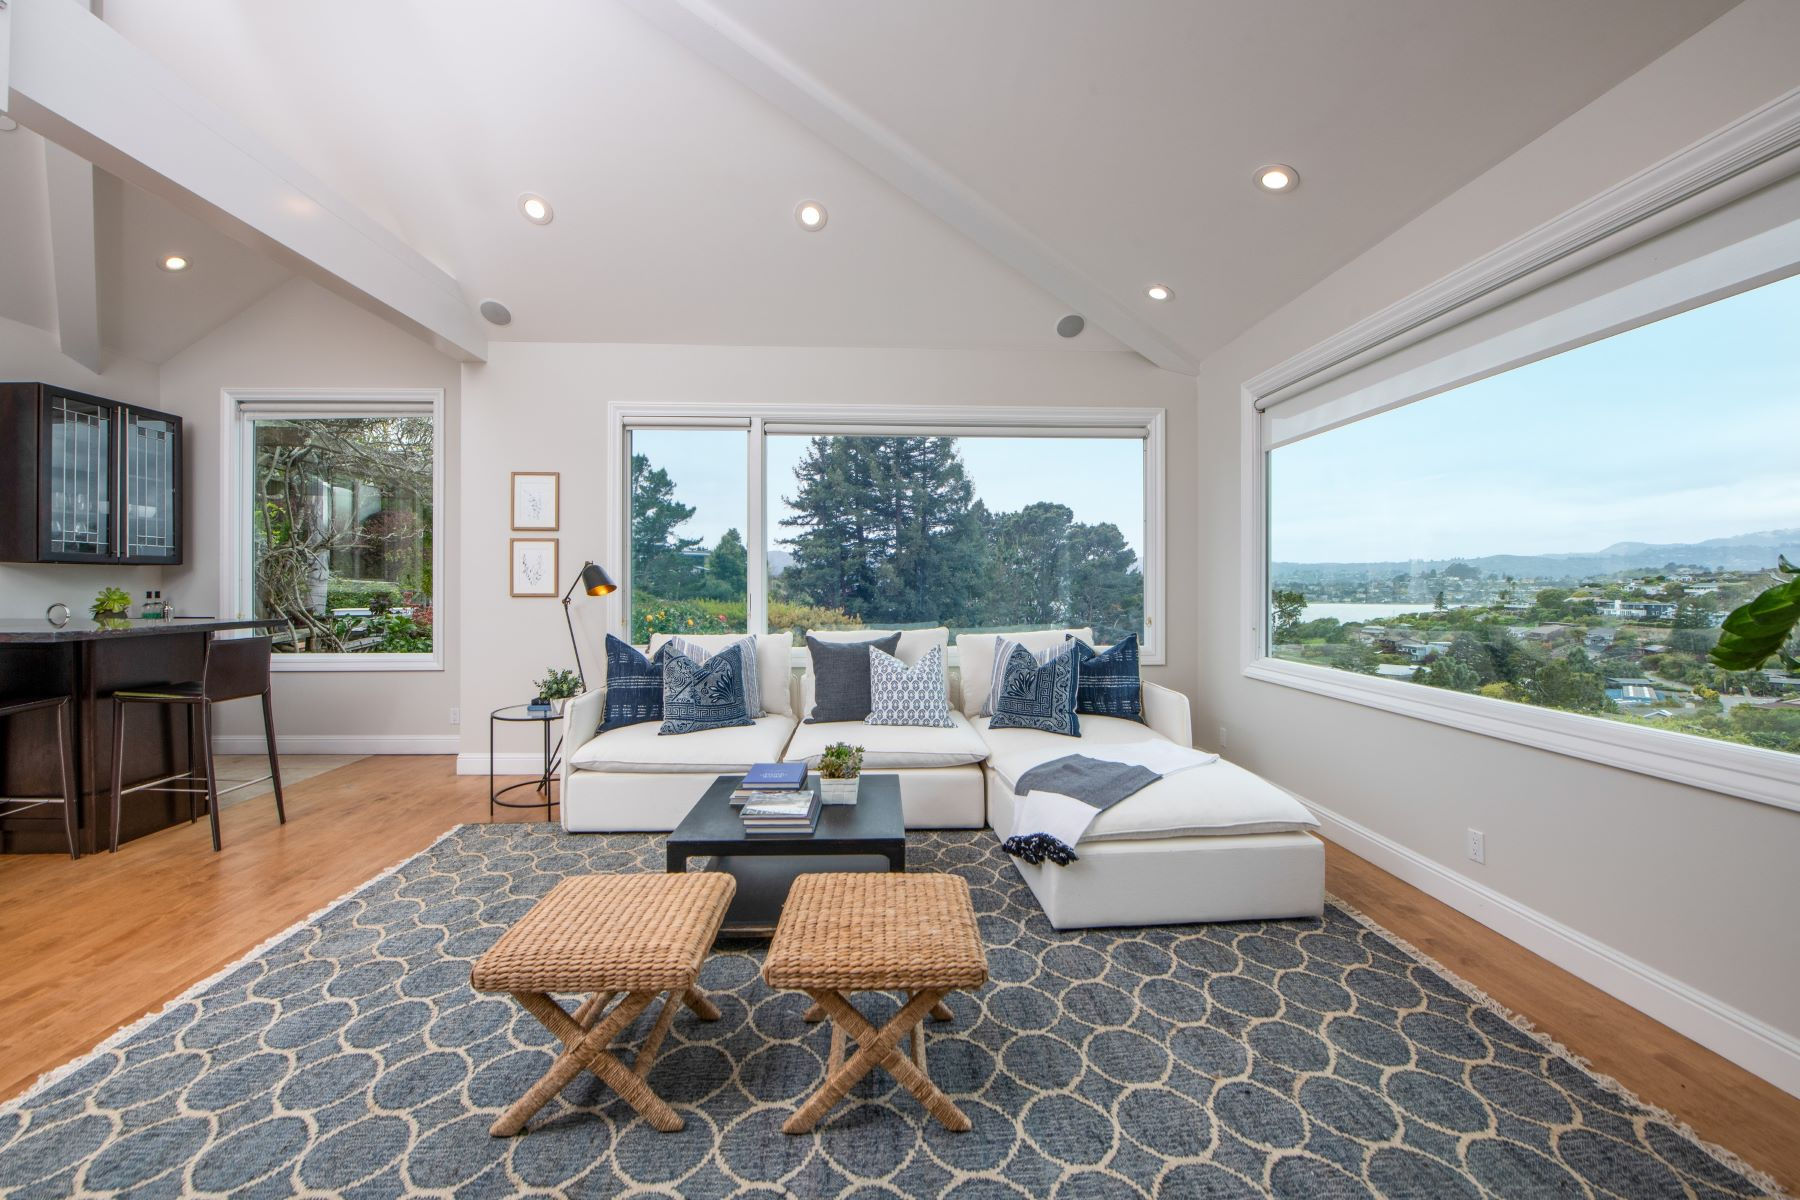 Single Family Homes for Sale at Modern Form Meets Classic Comfort! 39 Geldert Ct, Tiburon, California 94920 United States